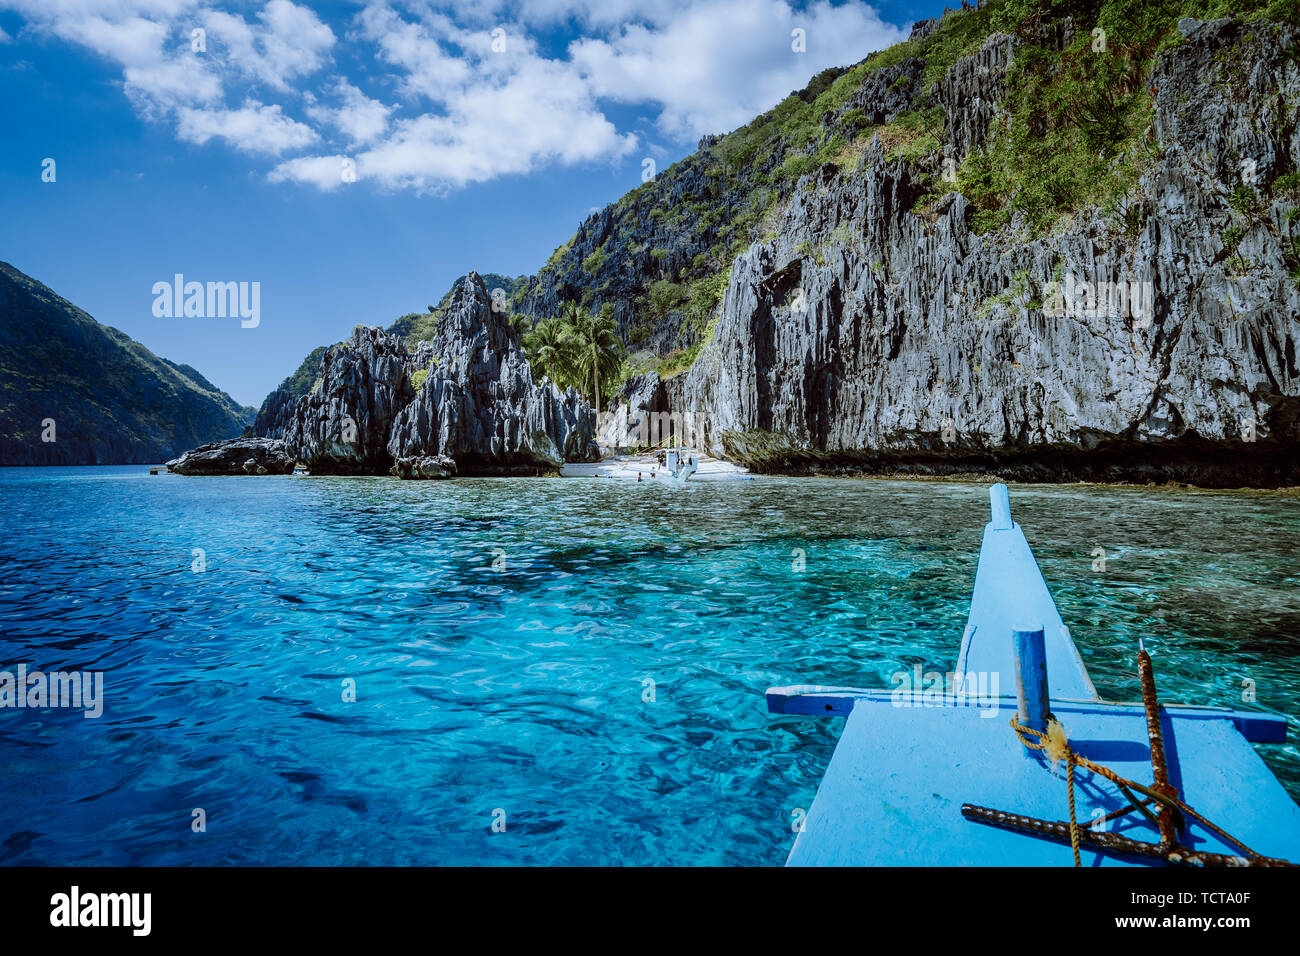 Banca boat approaching small beach at the Shrine, on Matinloc island, highlights of hopping trip Tour C. Must see, most beautiful place at Marine - Stock Image